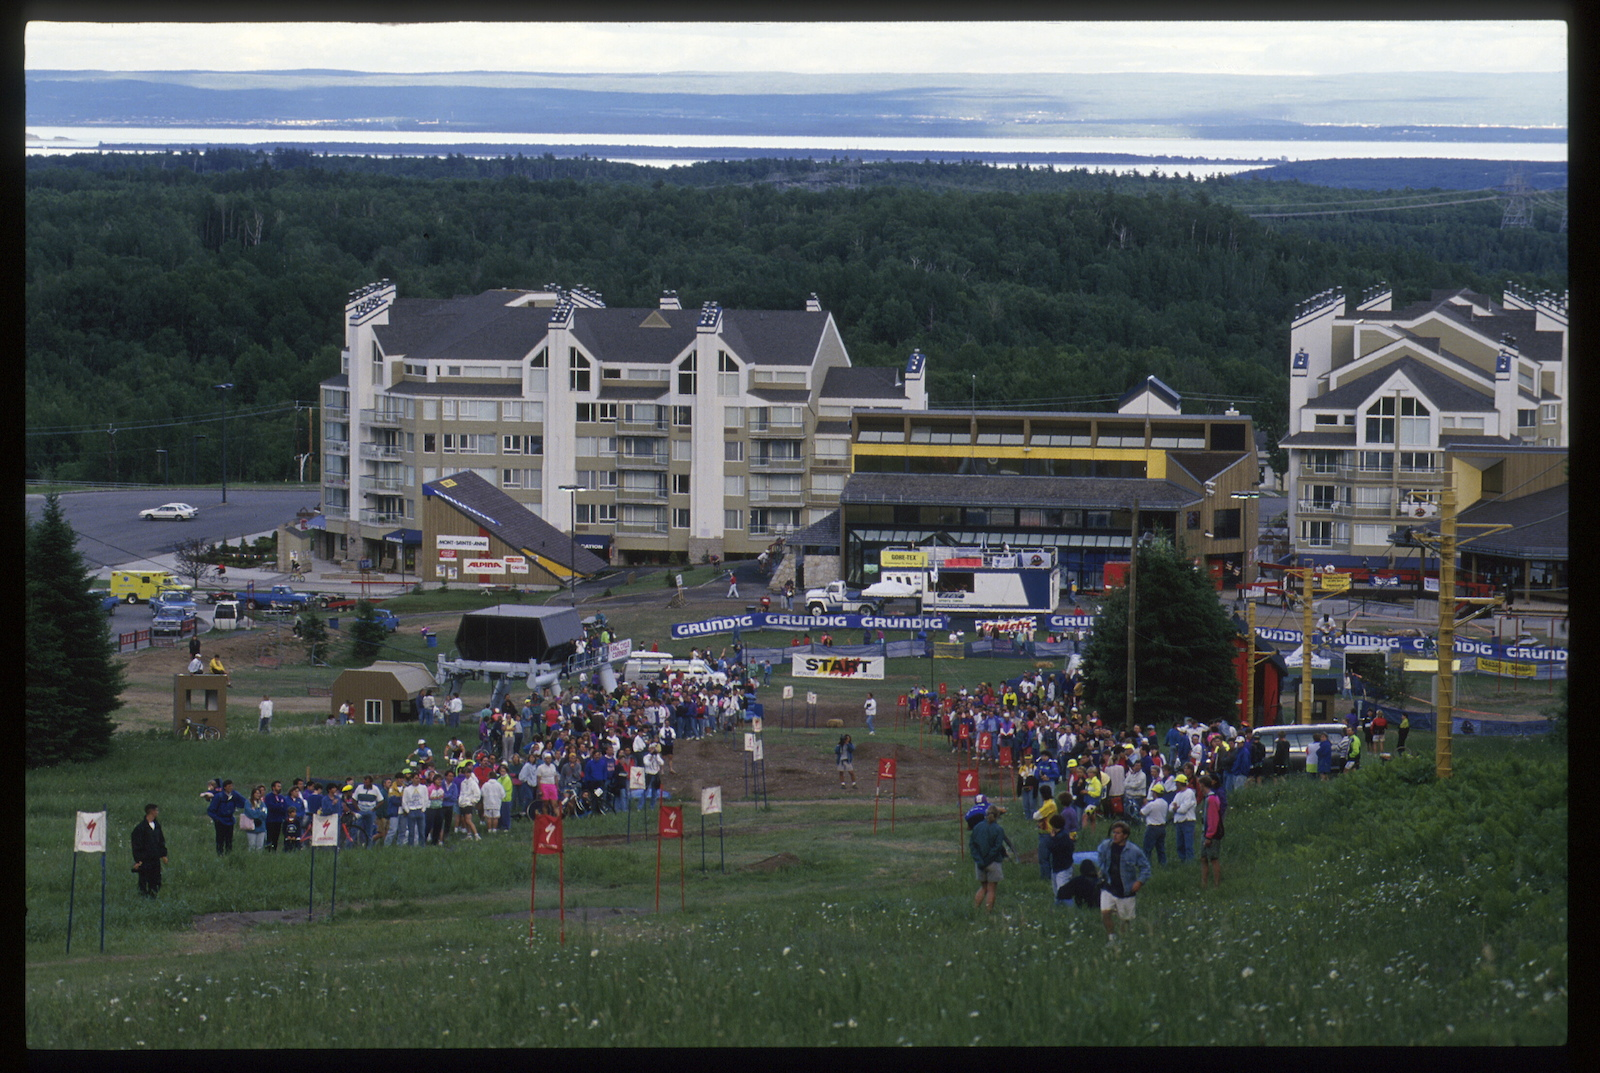 First UCI event at Mont-Sainte-Anne, 1991